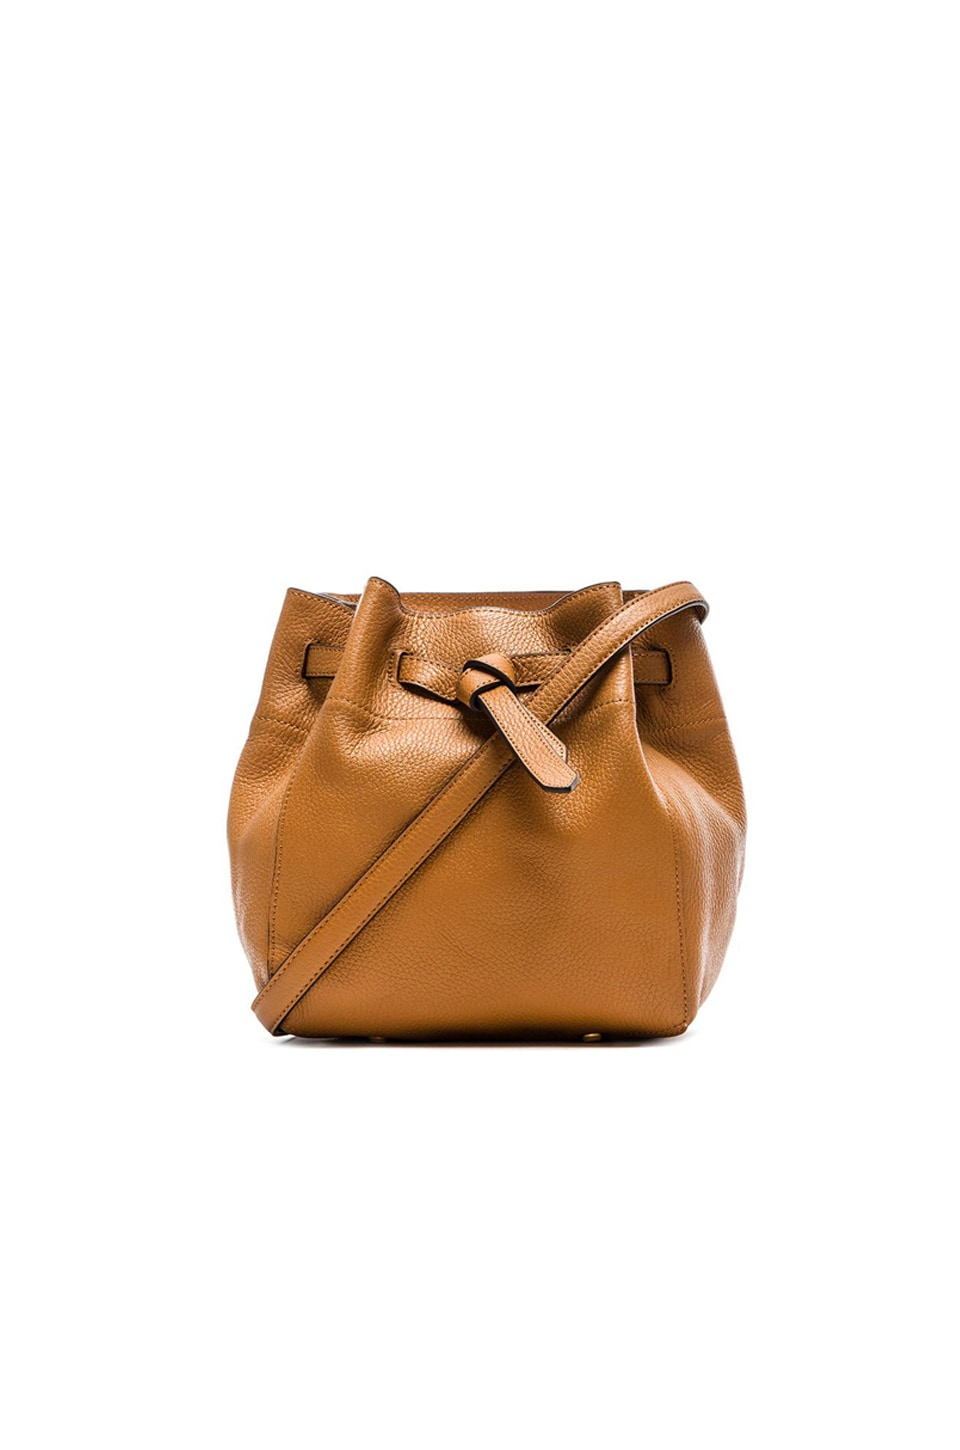 Annabel Ingall Georgia Bucket Bag in Toffee